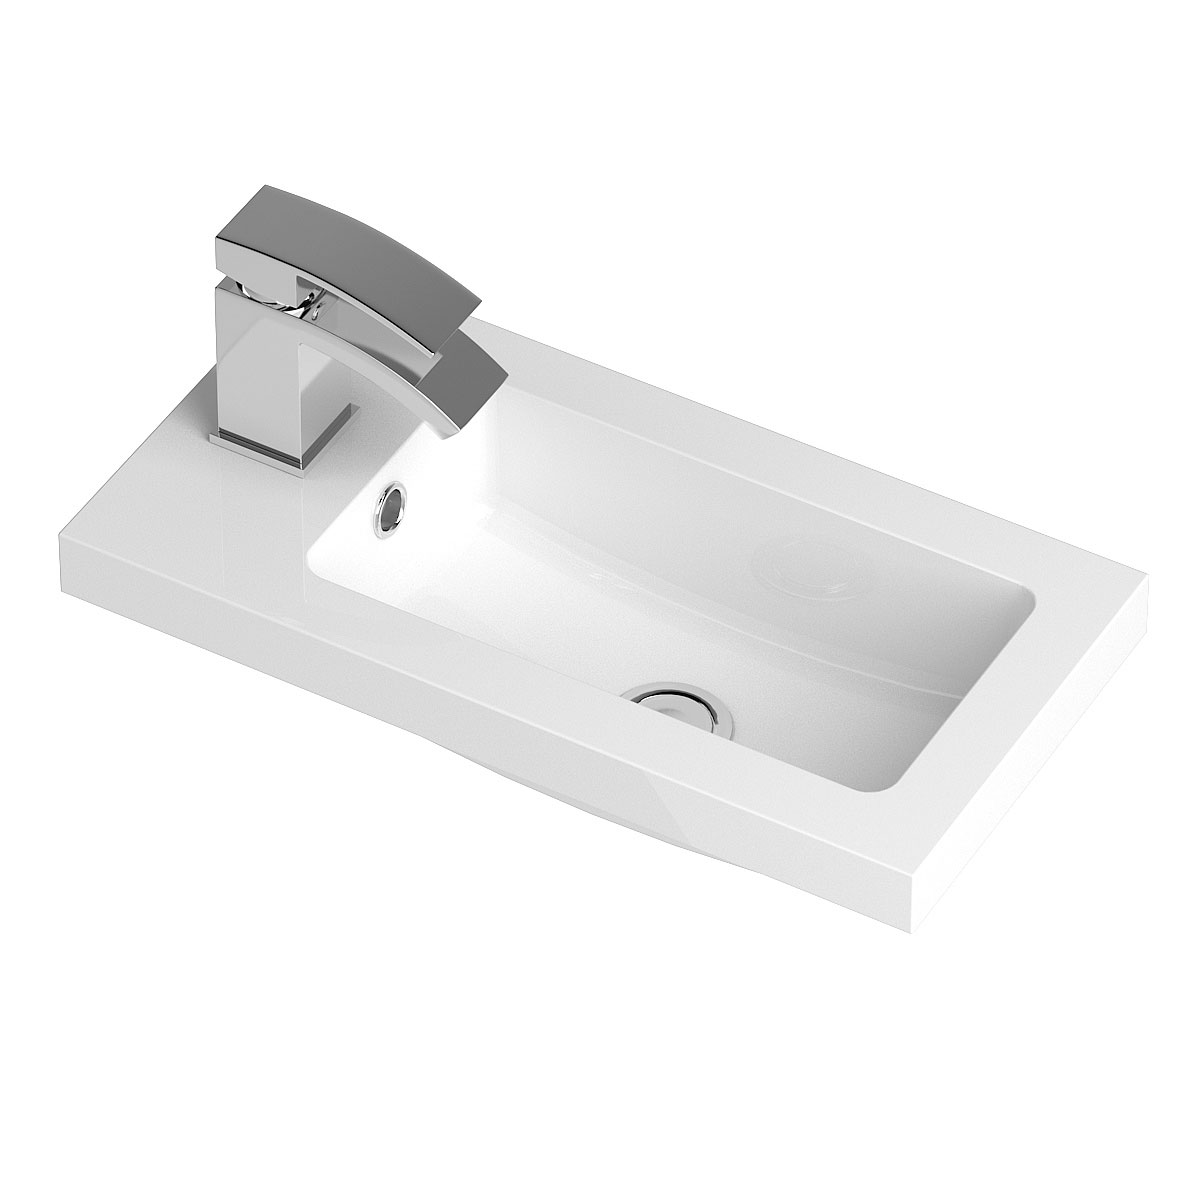 Hudson Reed Apollo Compact Floor Standing Vanity Unit and Basin 505mm Wide Gloss Grey 1 Tap Hole